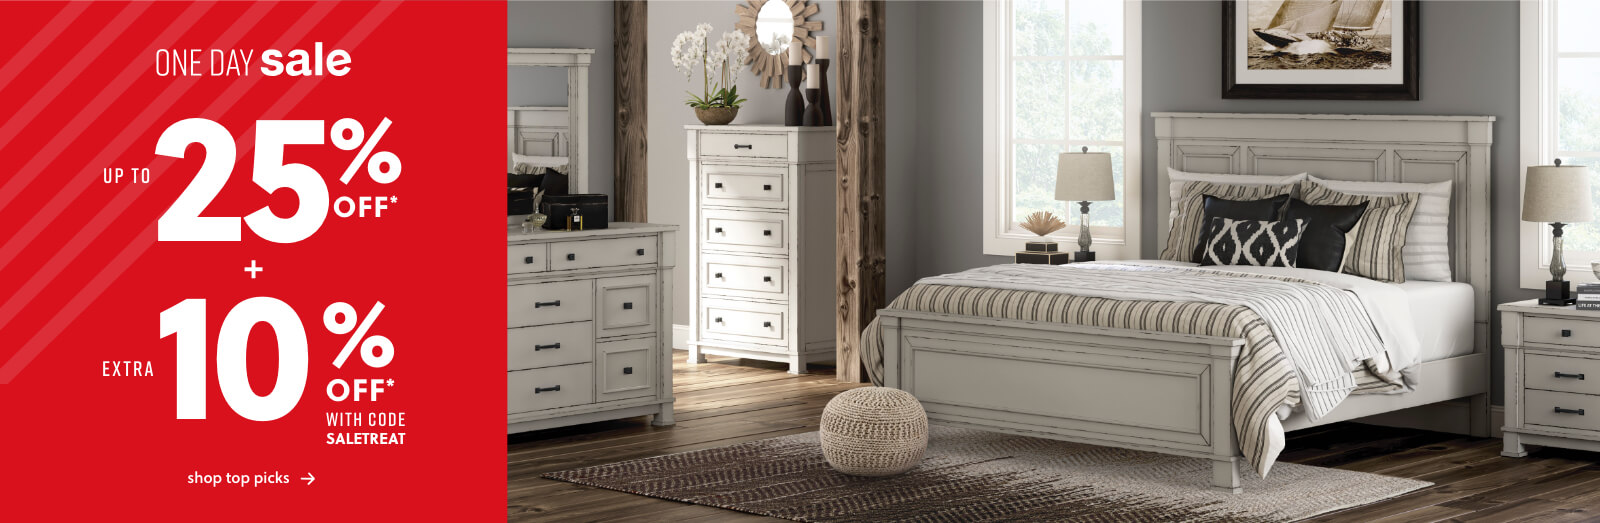 Furniture Stores In Valencia Ca Ashley Furniture Homestore Home Furniture Decor Ashley Homestore